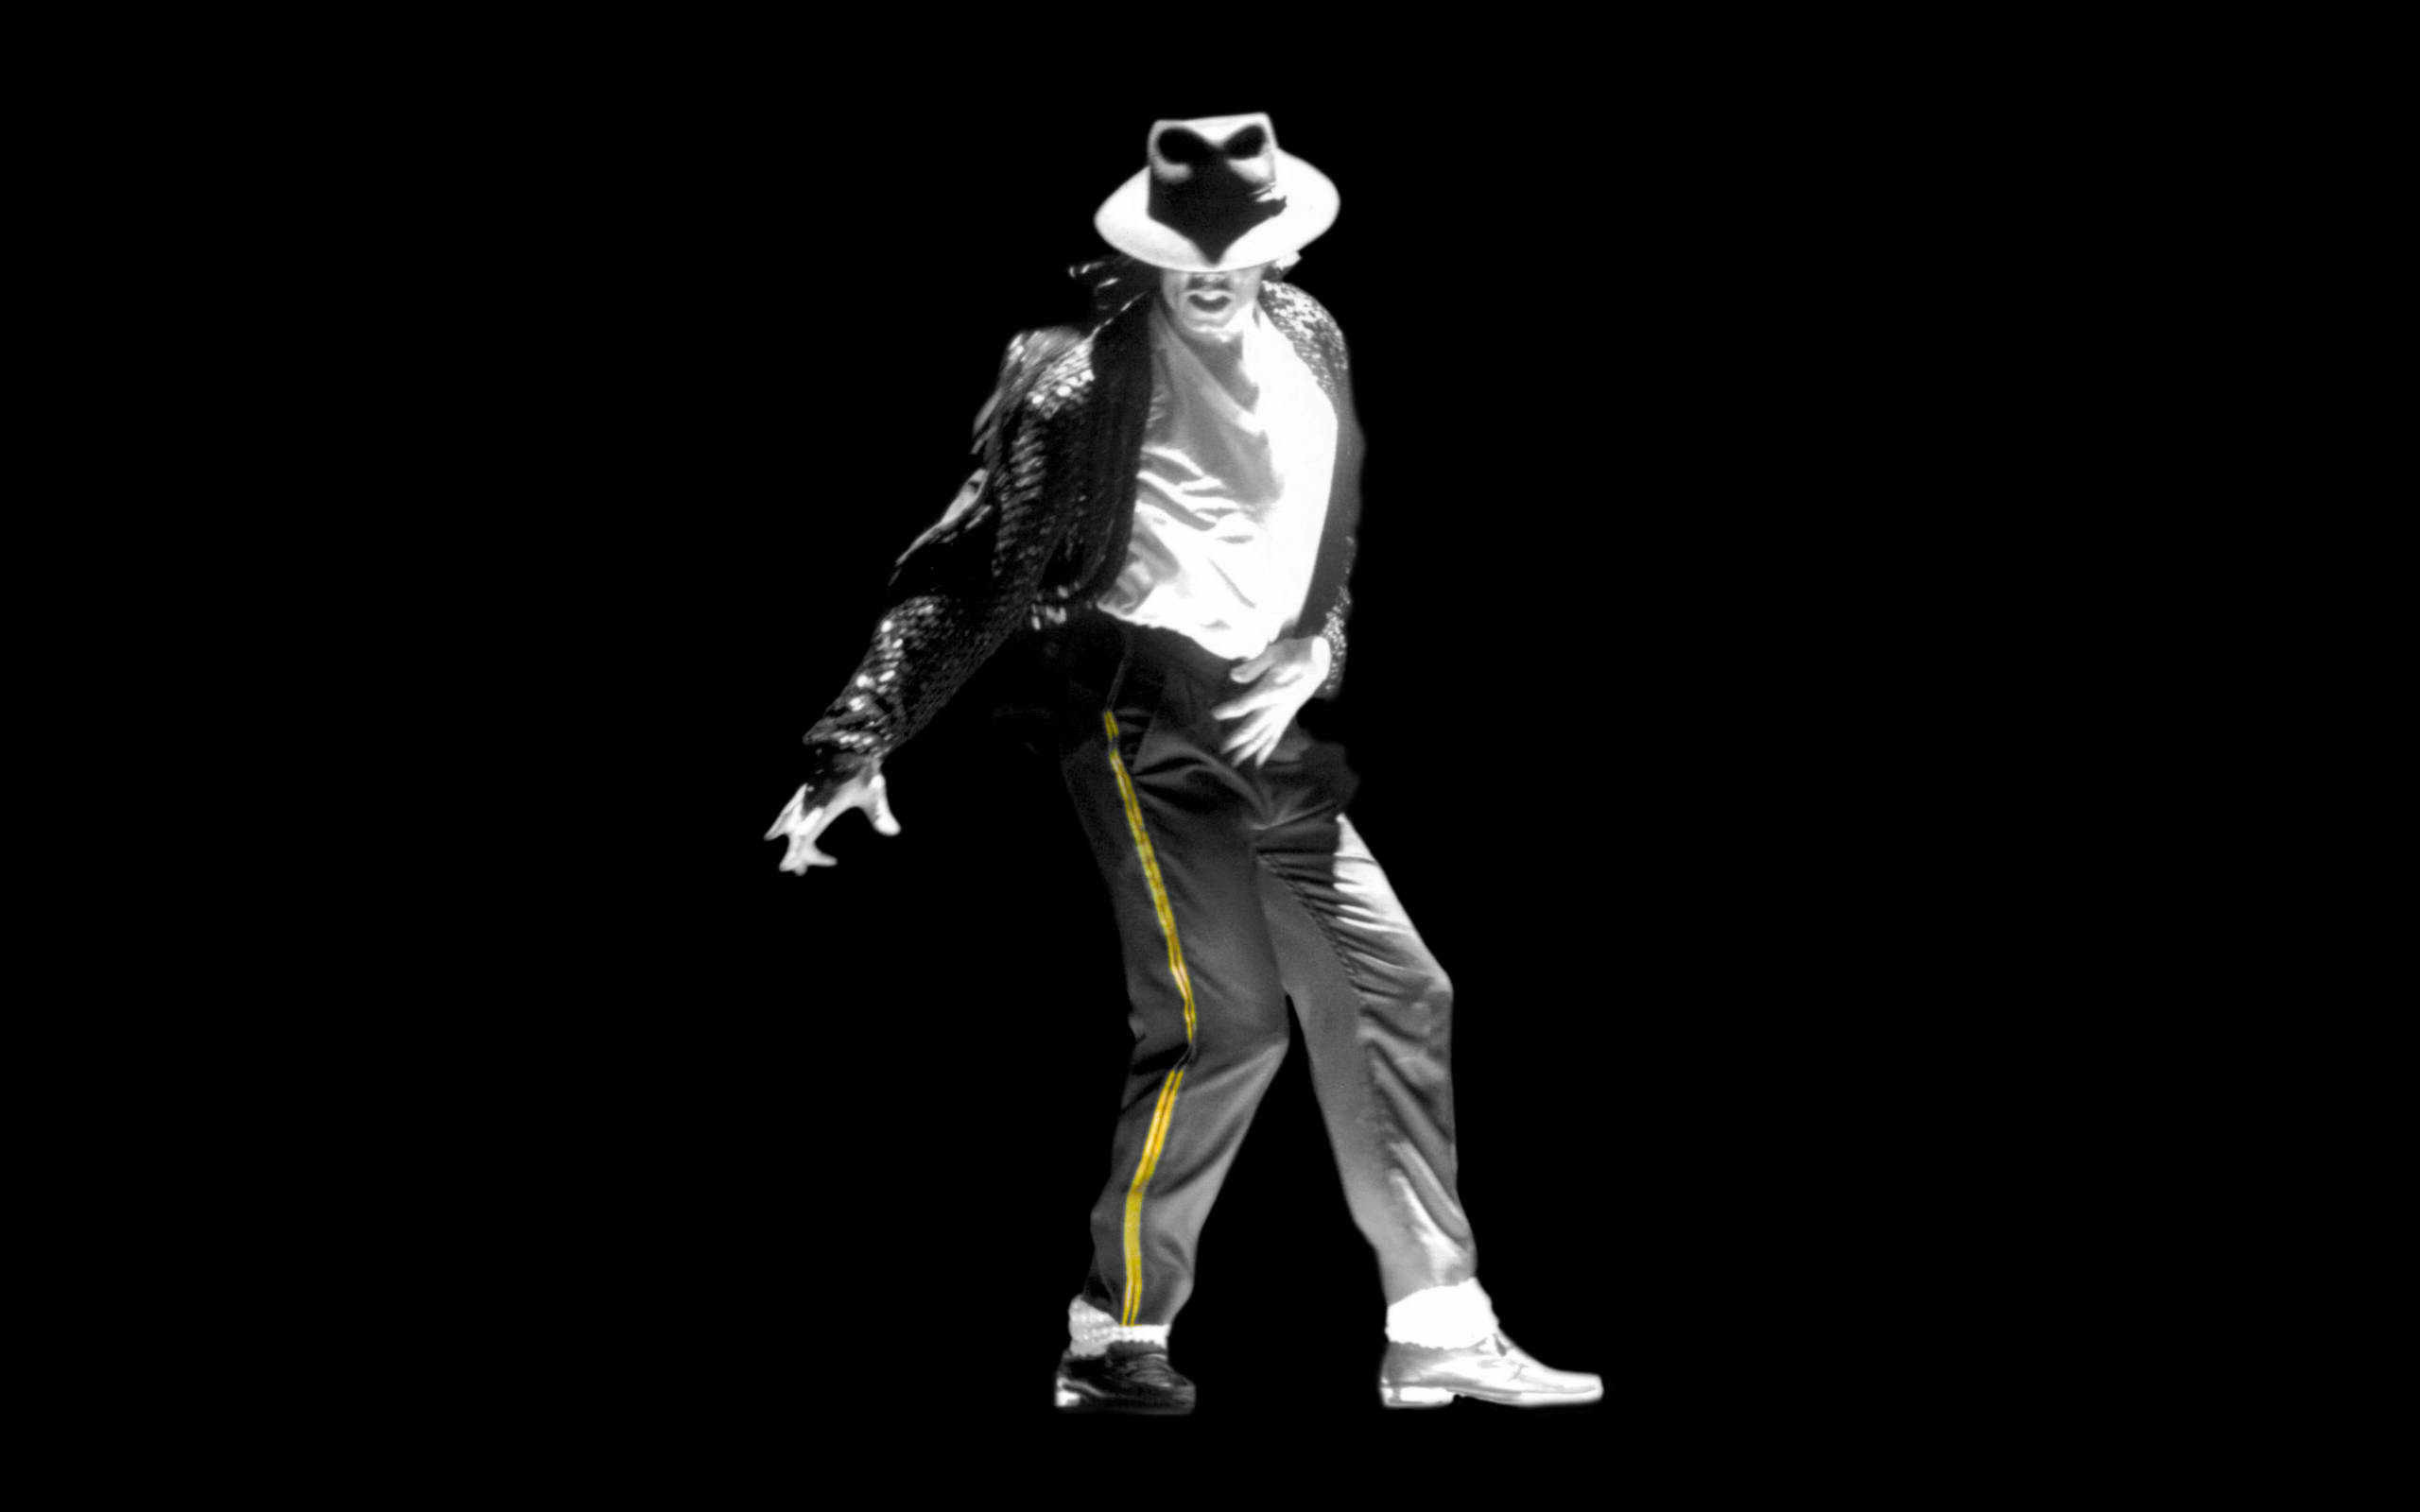 2560x1600 Michael Jackson images ~unforgettable~ HD wallpaper and background photos